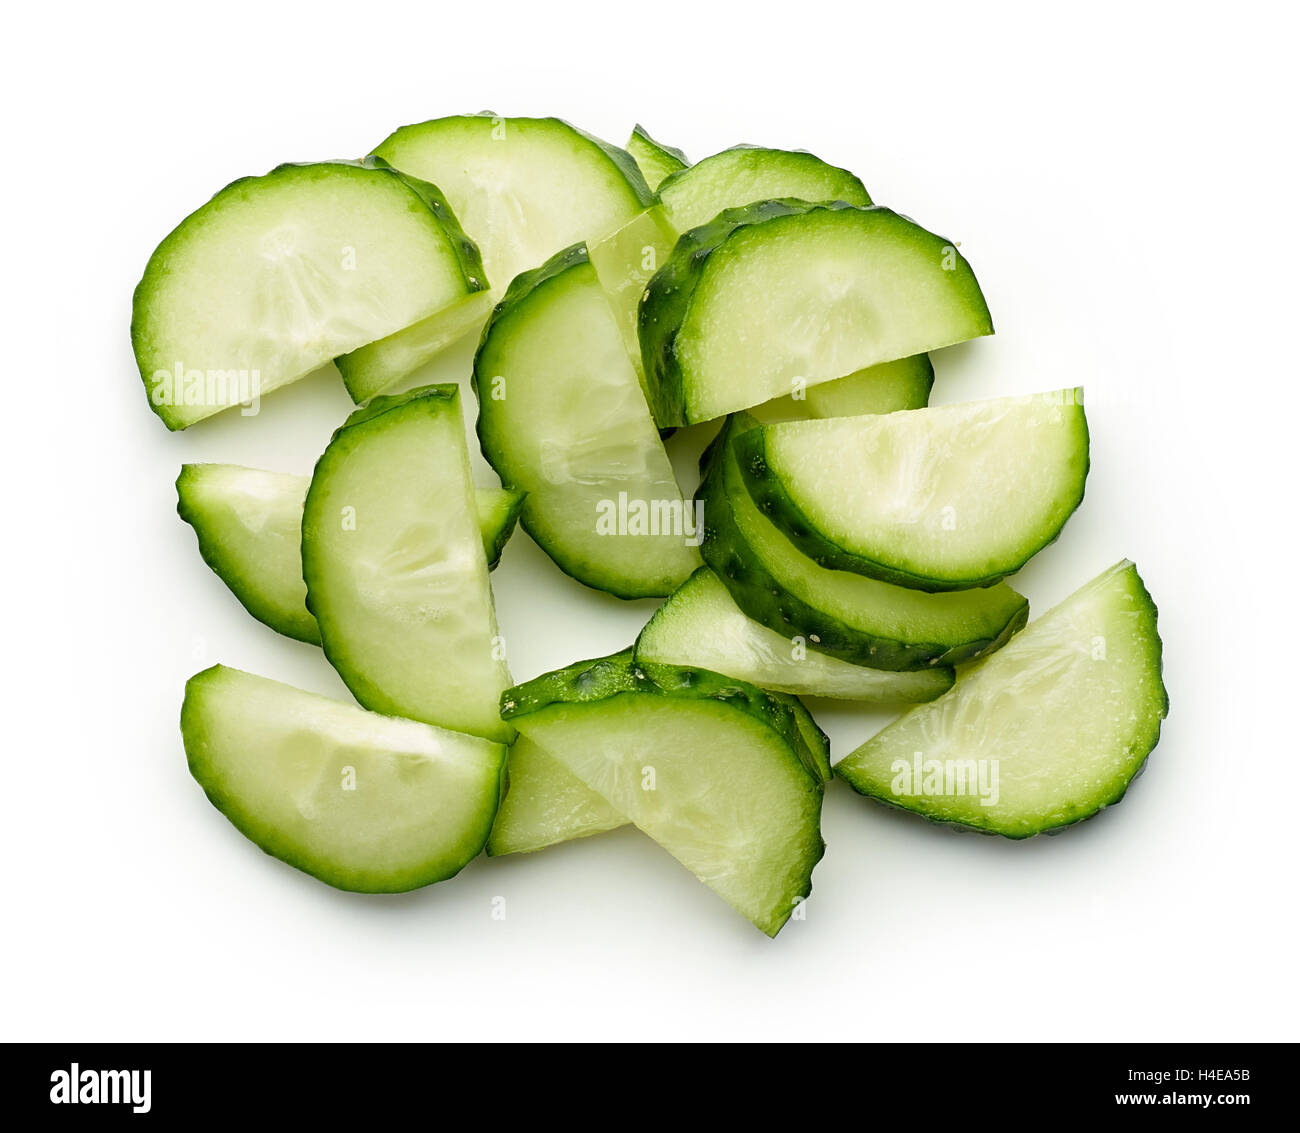 Fresh cucumber slices isolated on white background, top view - Stock Image